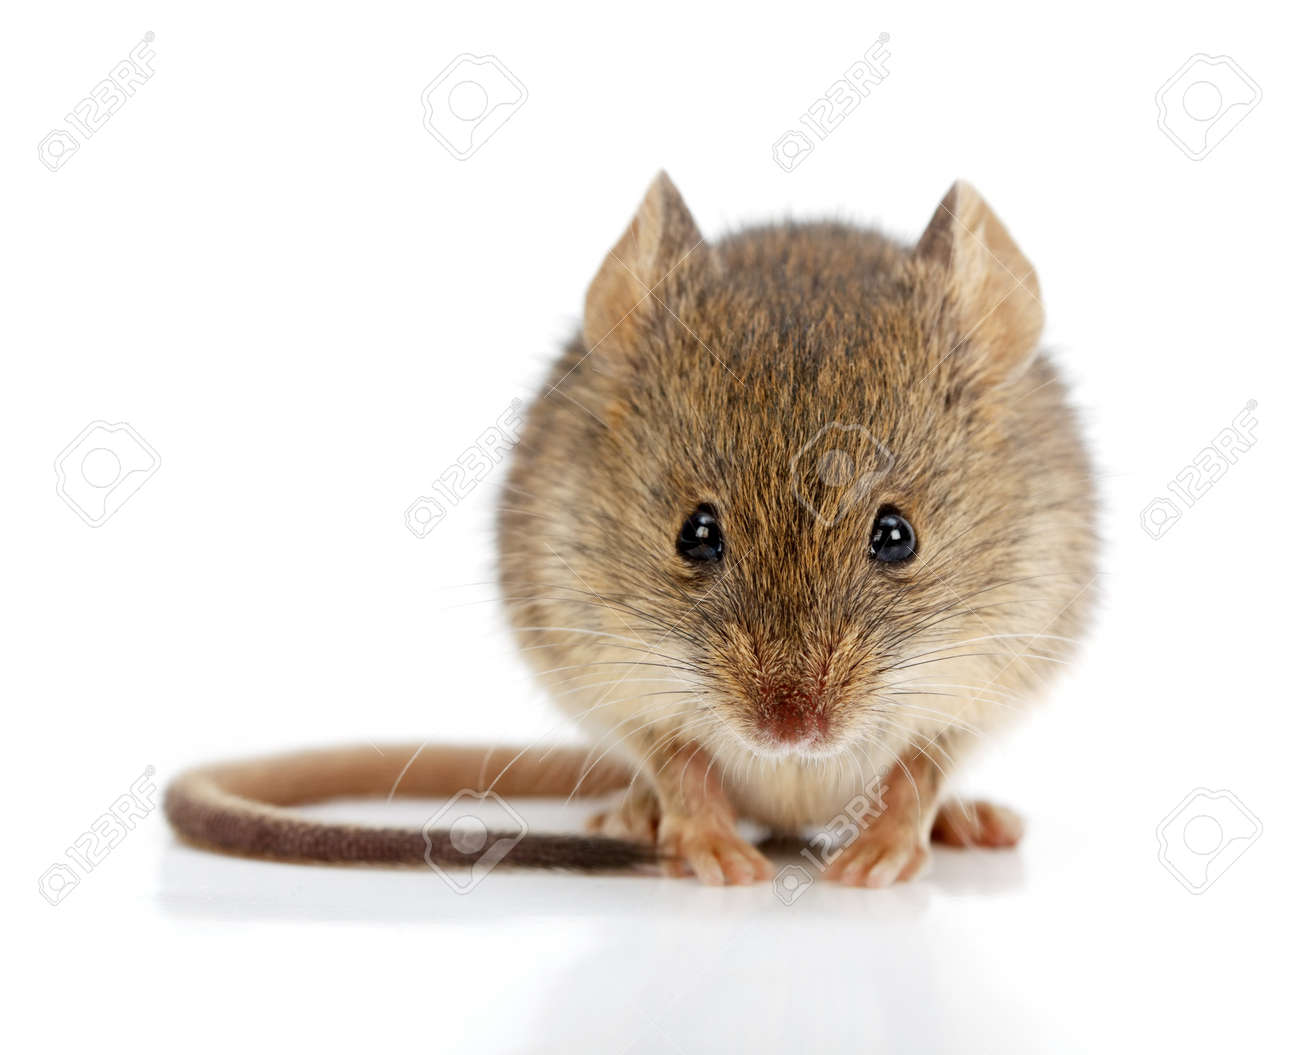 Close view of a tiny house mouse (Mus musculus) - 22162852